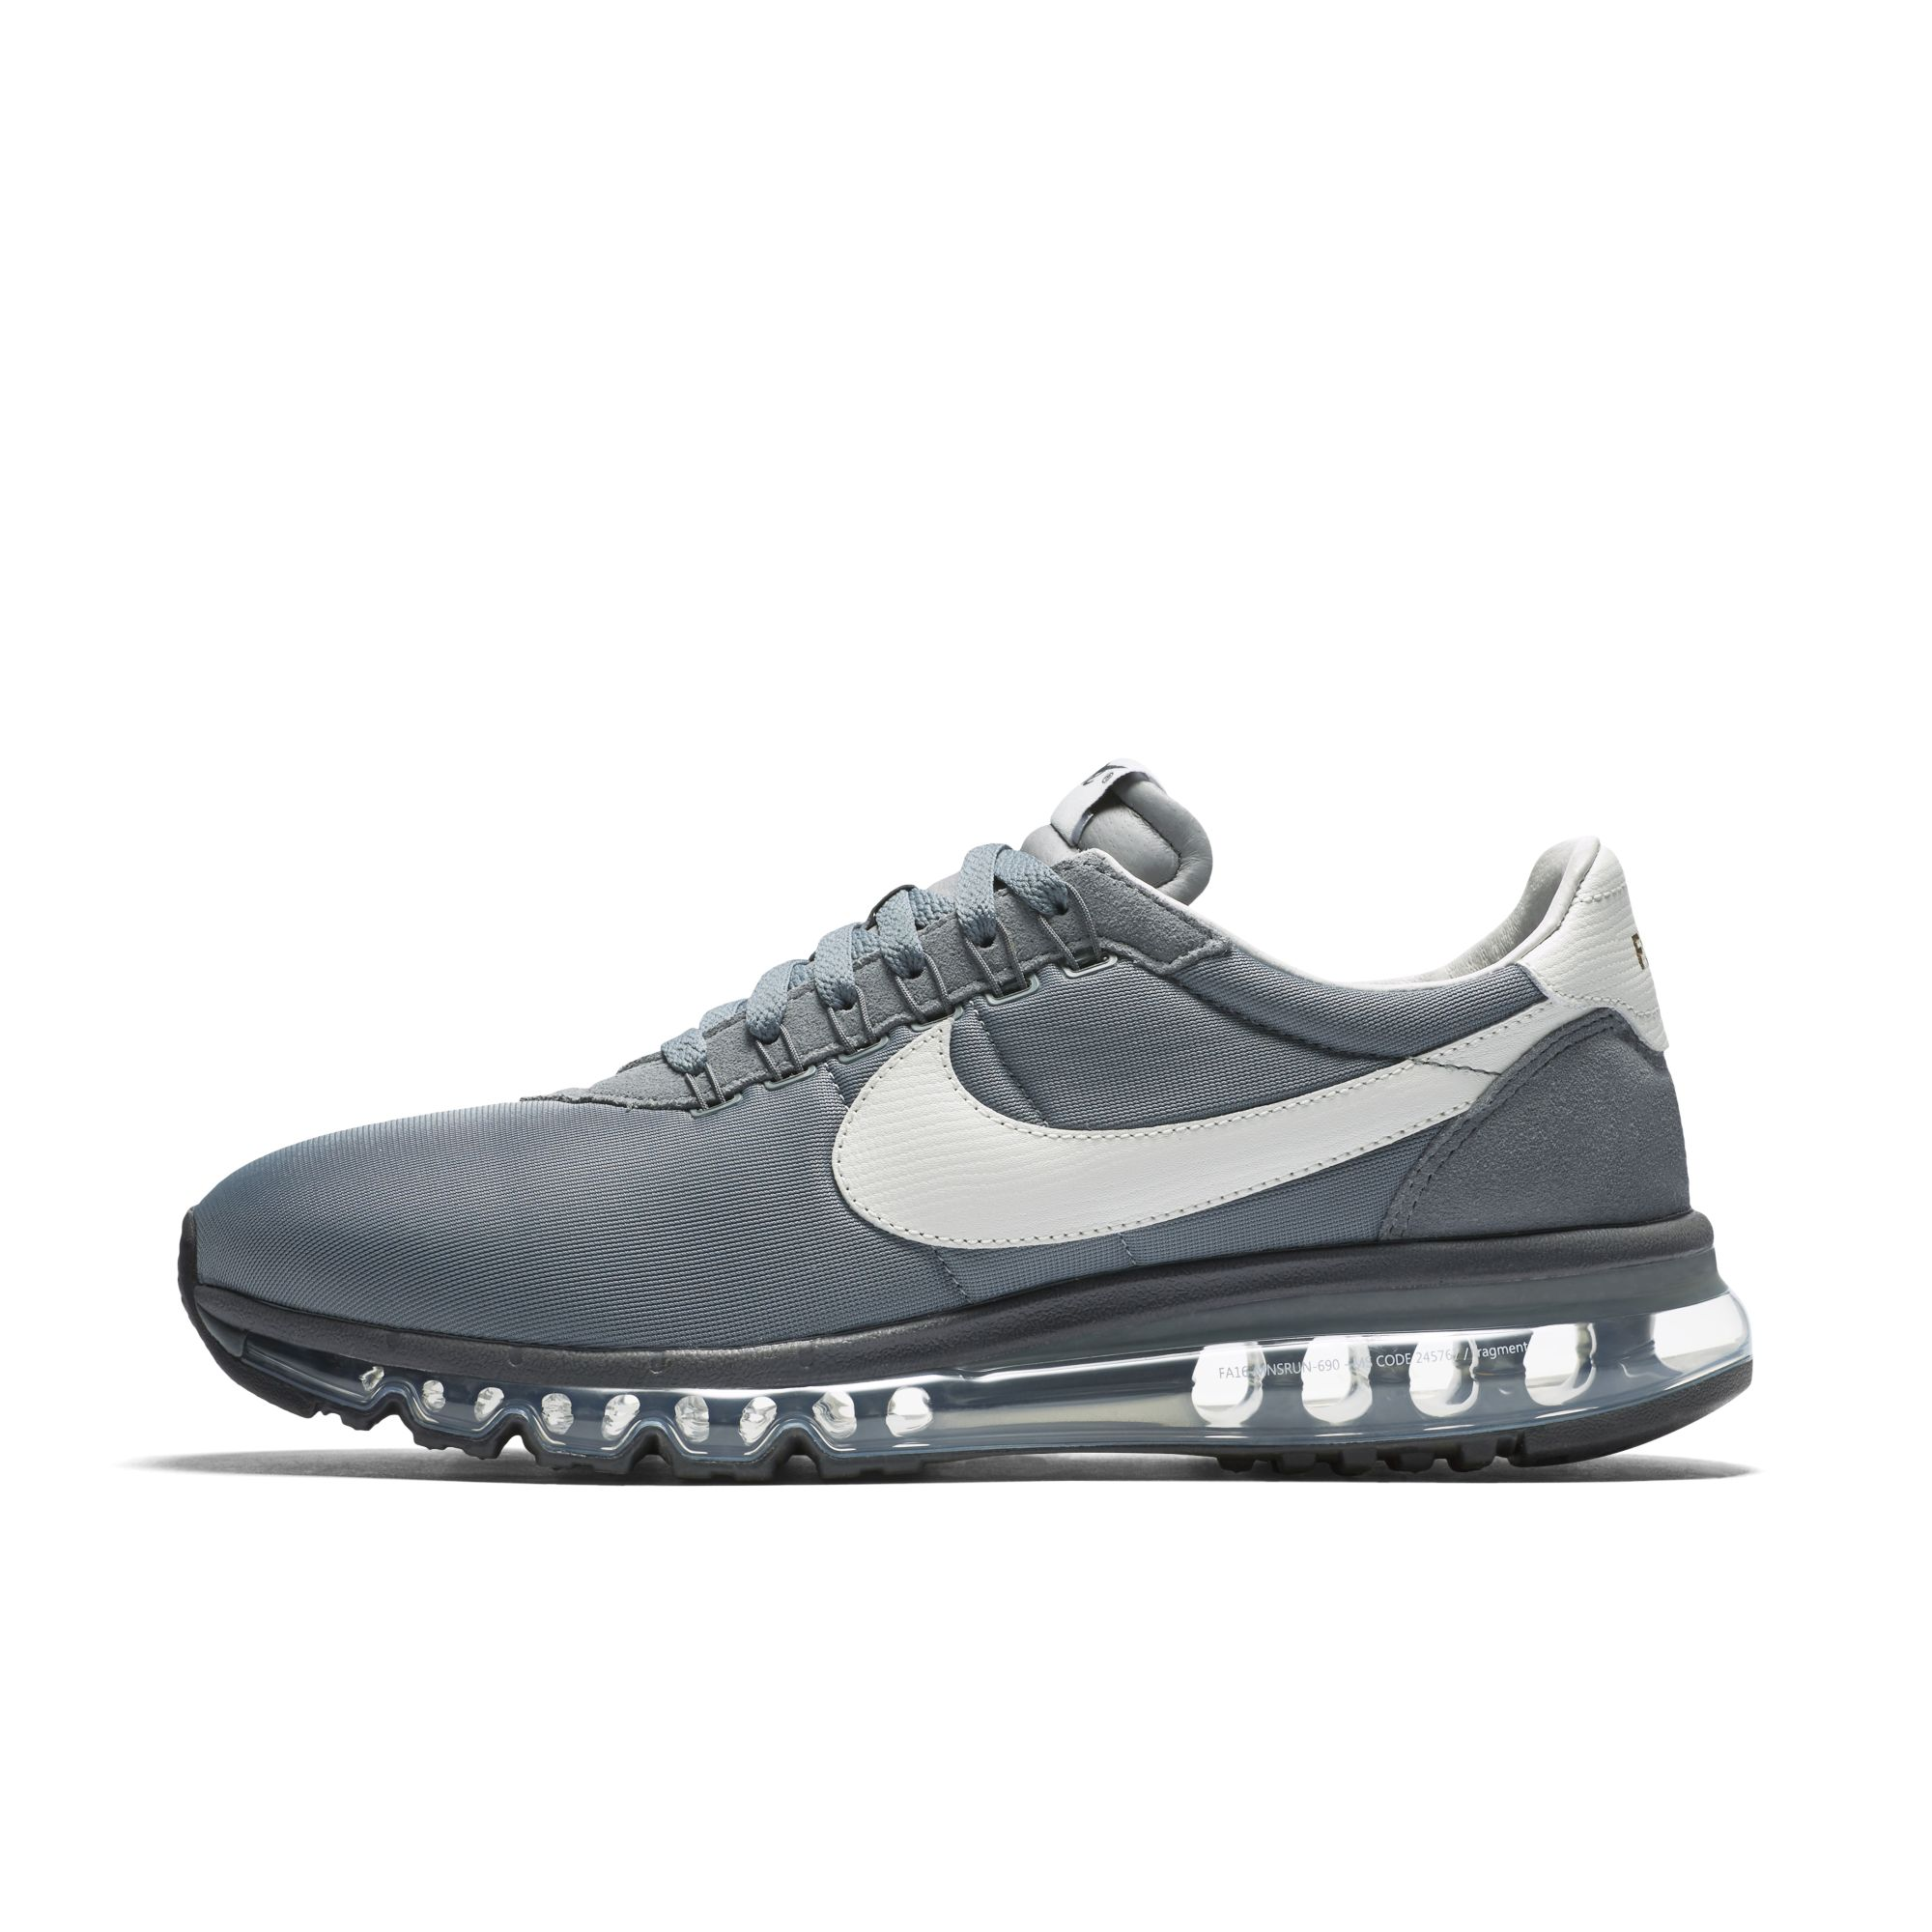 sports shoes 358bd 27c07 The Fragment Design x Nike Air Max LD Zero - WearTesters